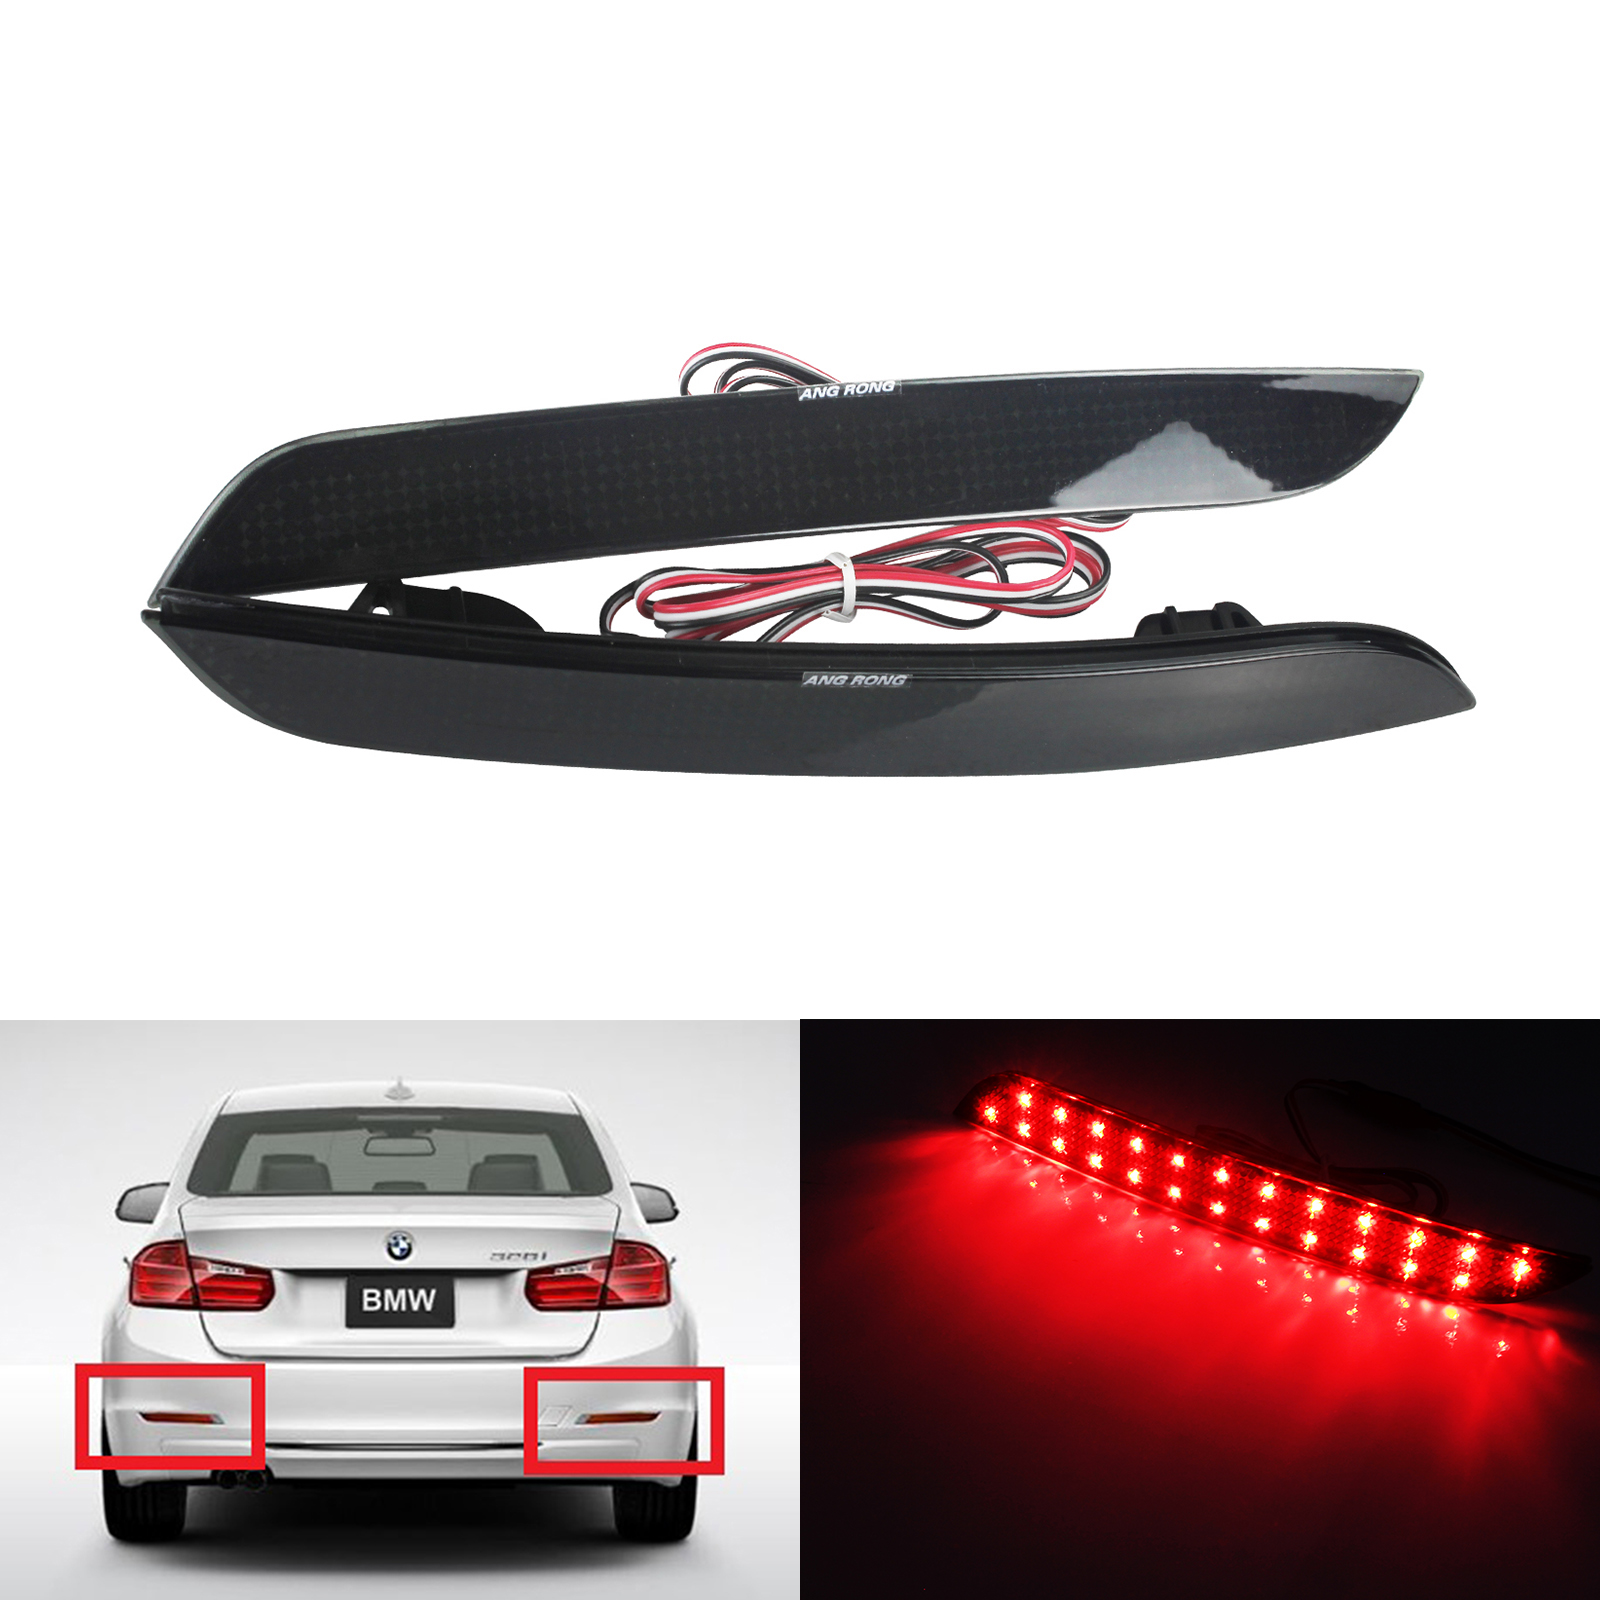 TAIL LIGHT FOR 98mm COMBINABLE REAR LIGHTS KIT CAR 55mm LED INNER CLEAR STOP